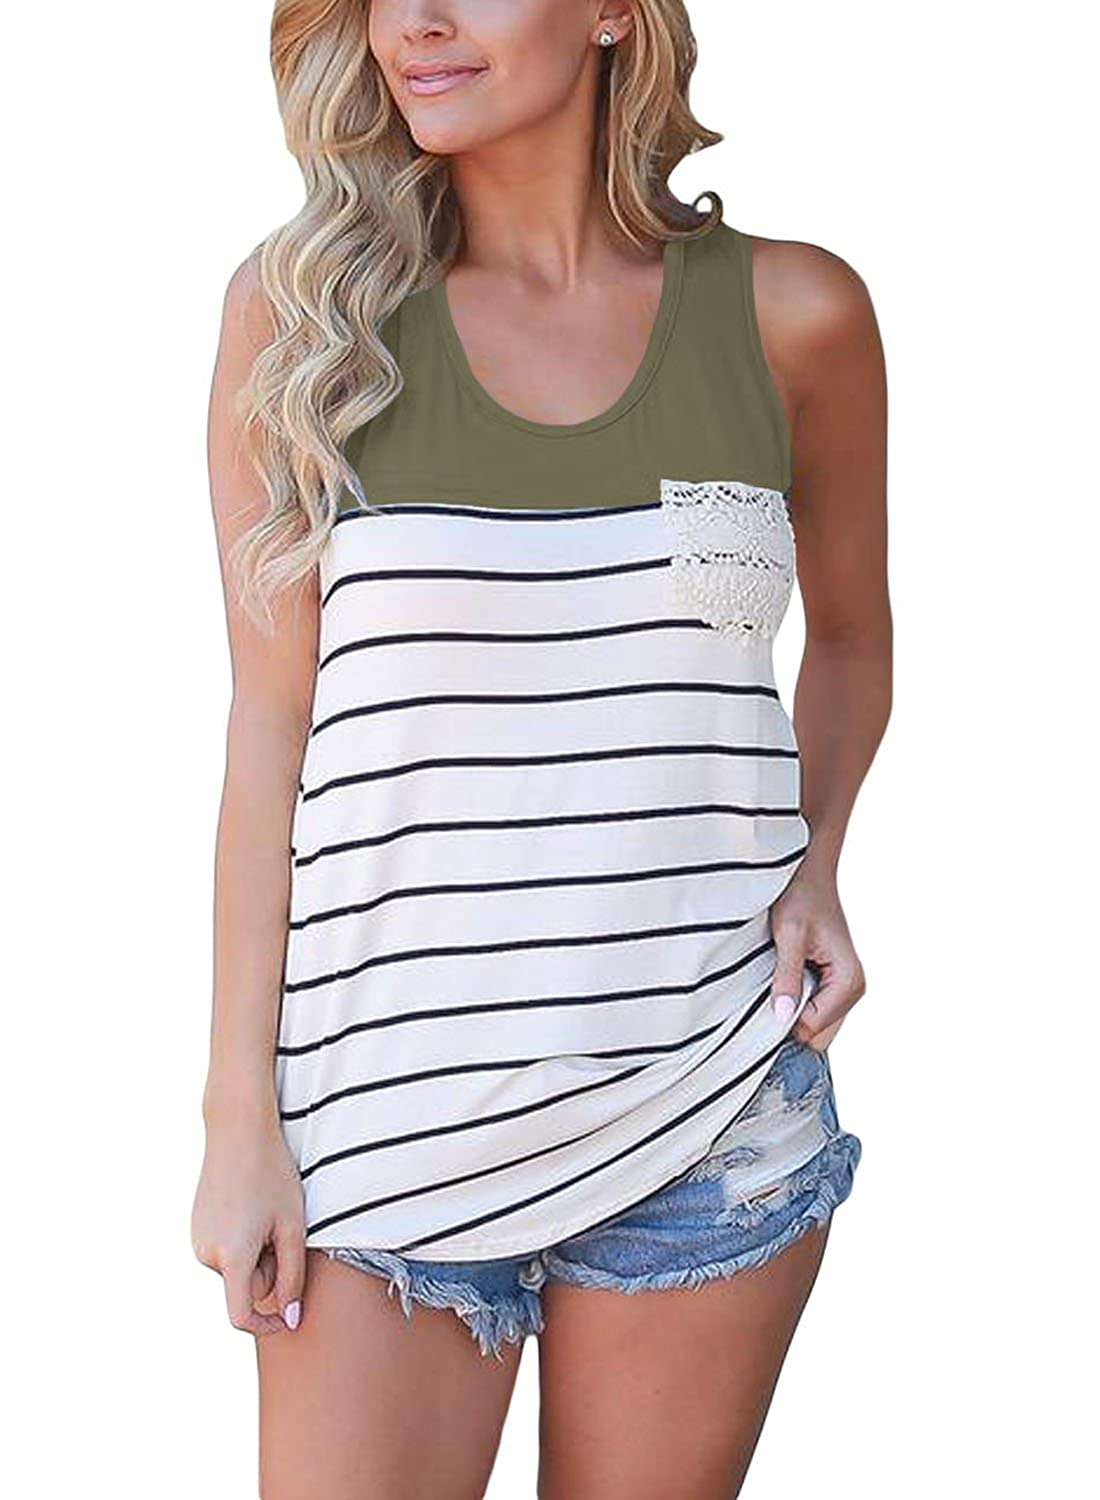 adacf726d5 Summer Tank Tops For Women Casual Blouses Racerback top in casual loose  fit. Scoop neck, sleeveless and round hemline. Made of soft quality fabric,  ...